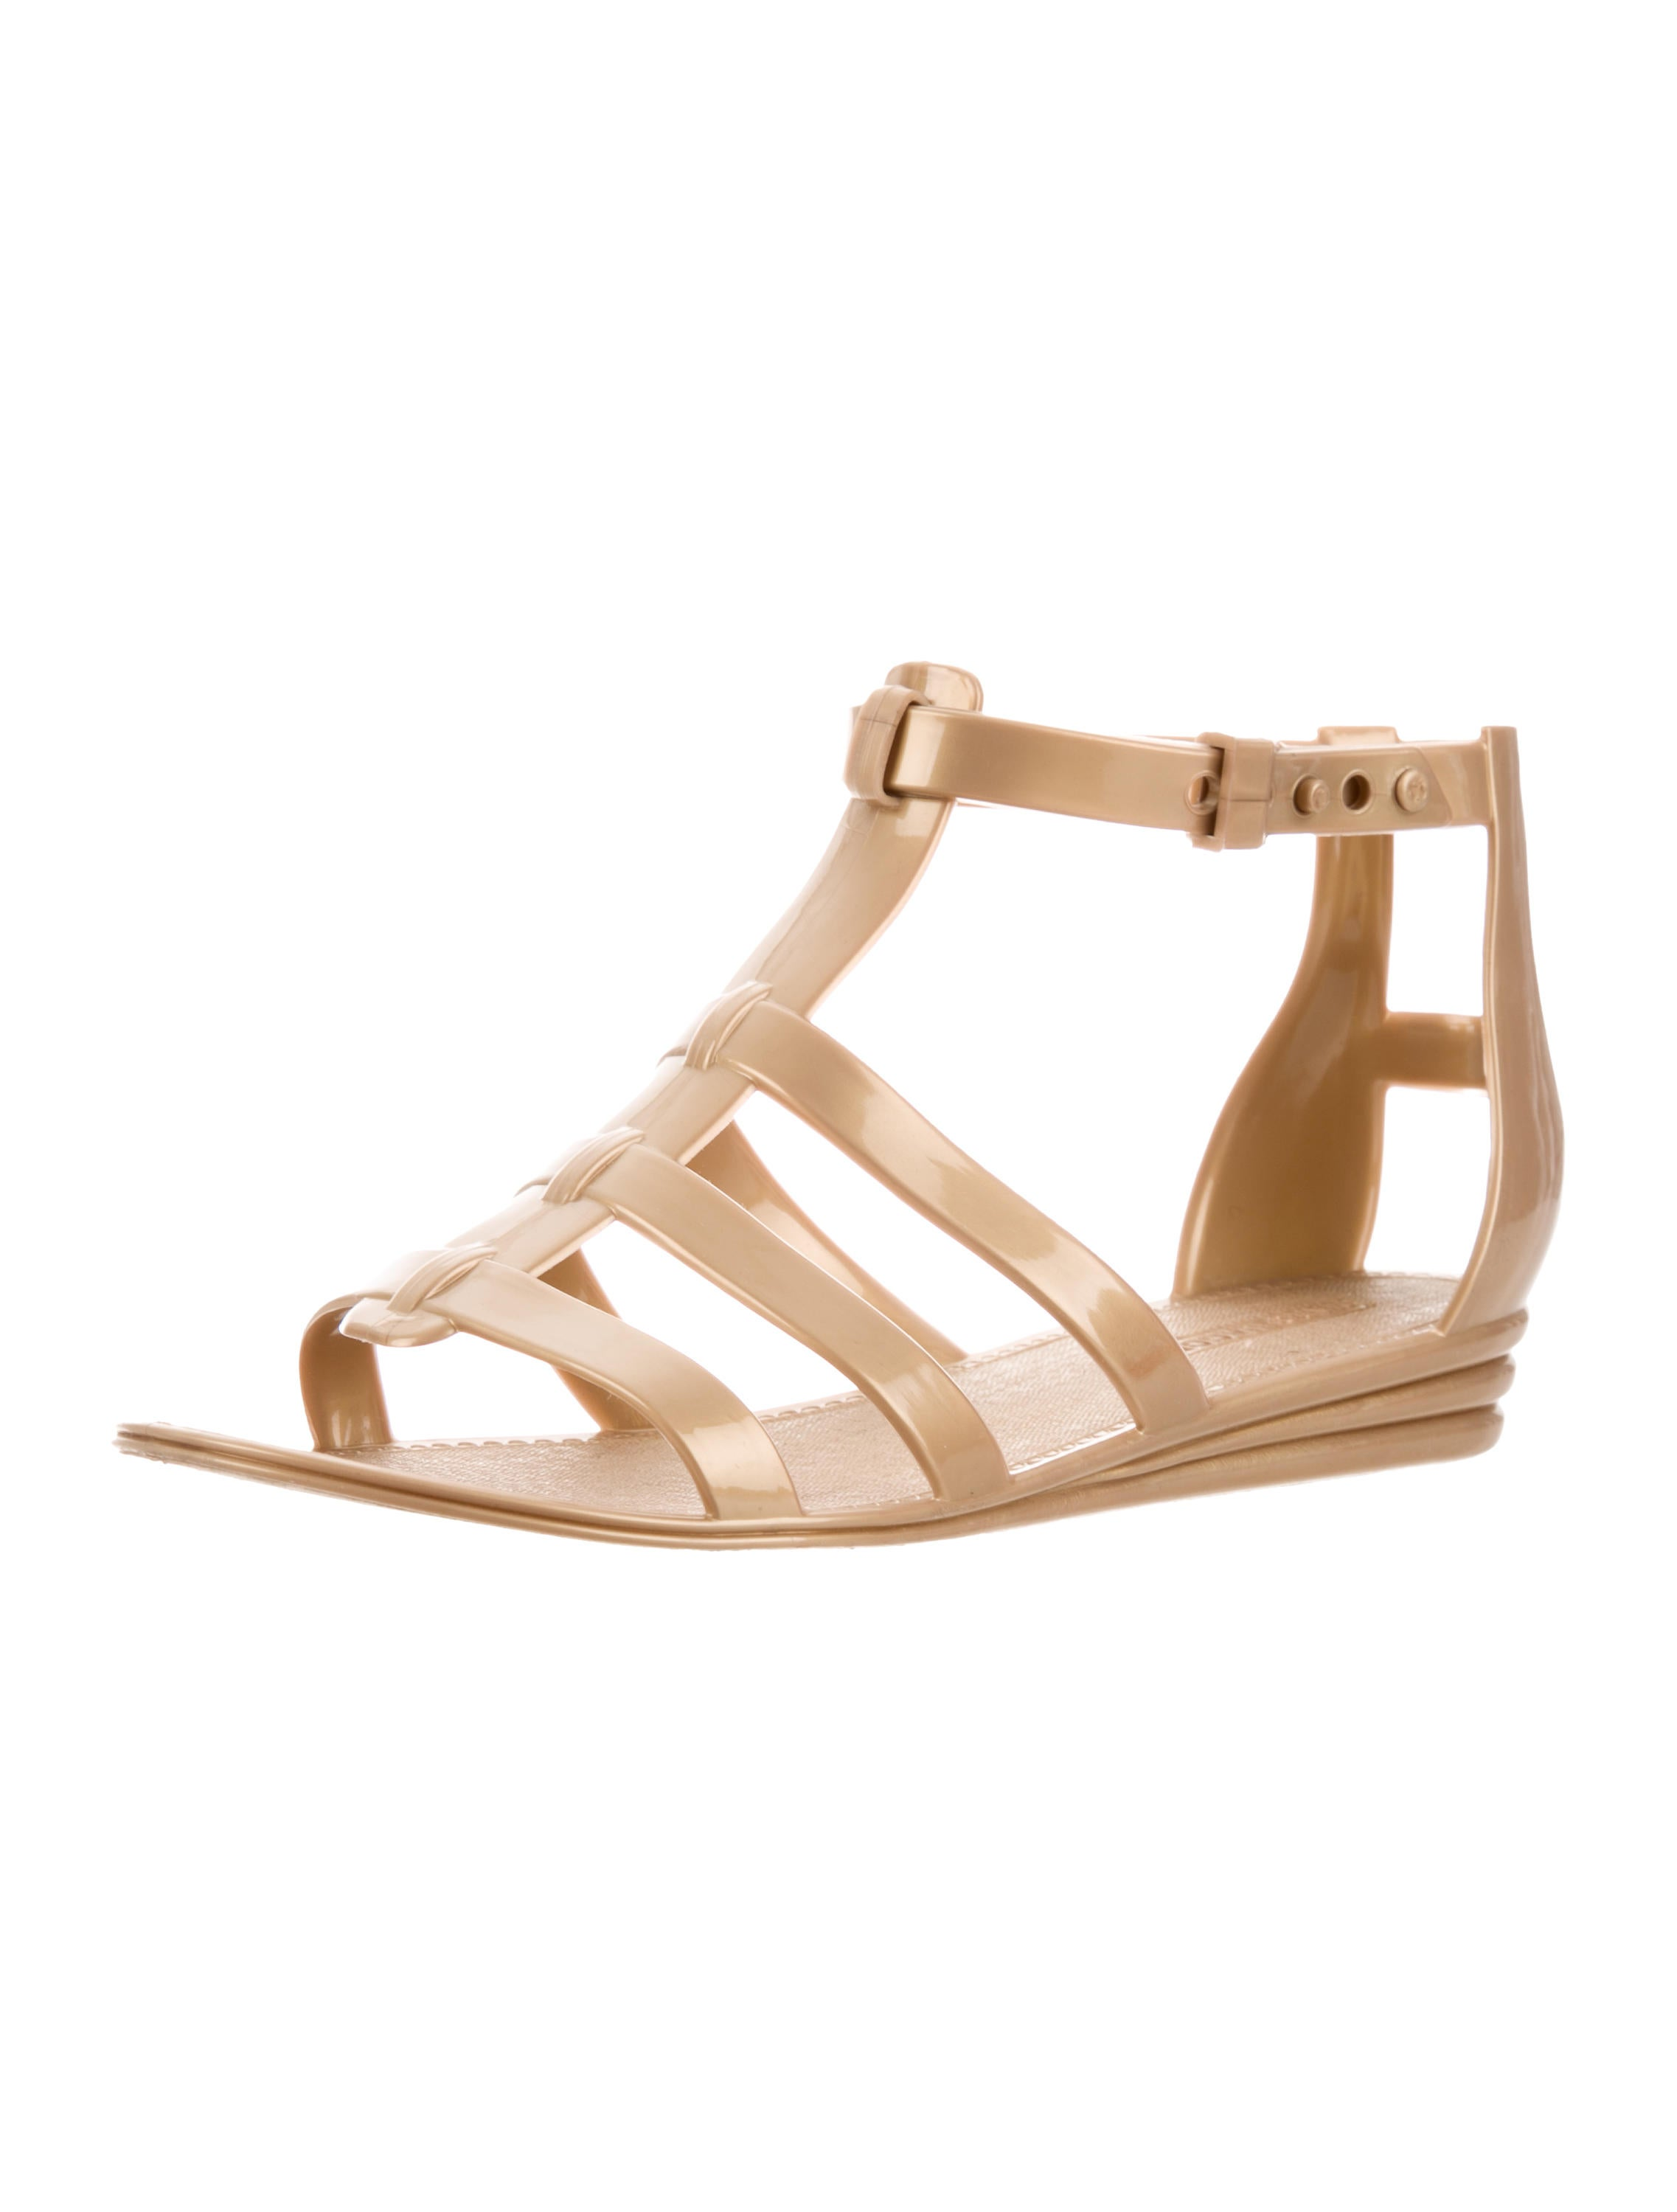 tumblr for sale Marc Jacobs Metallic Cage Sandals low shipping wide range of online AjUkRf4NvV